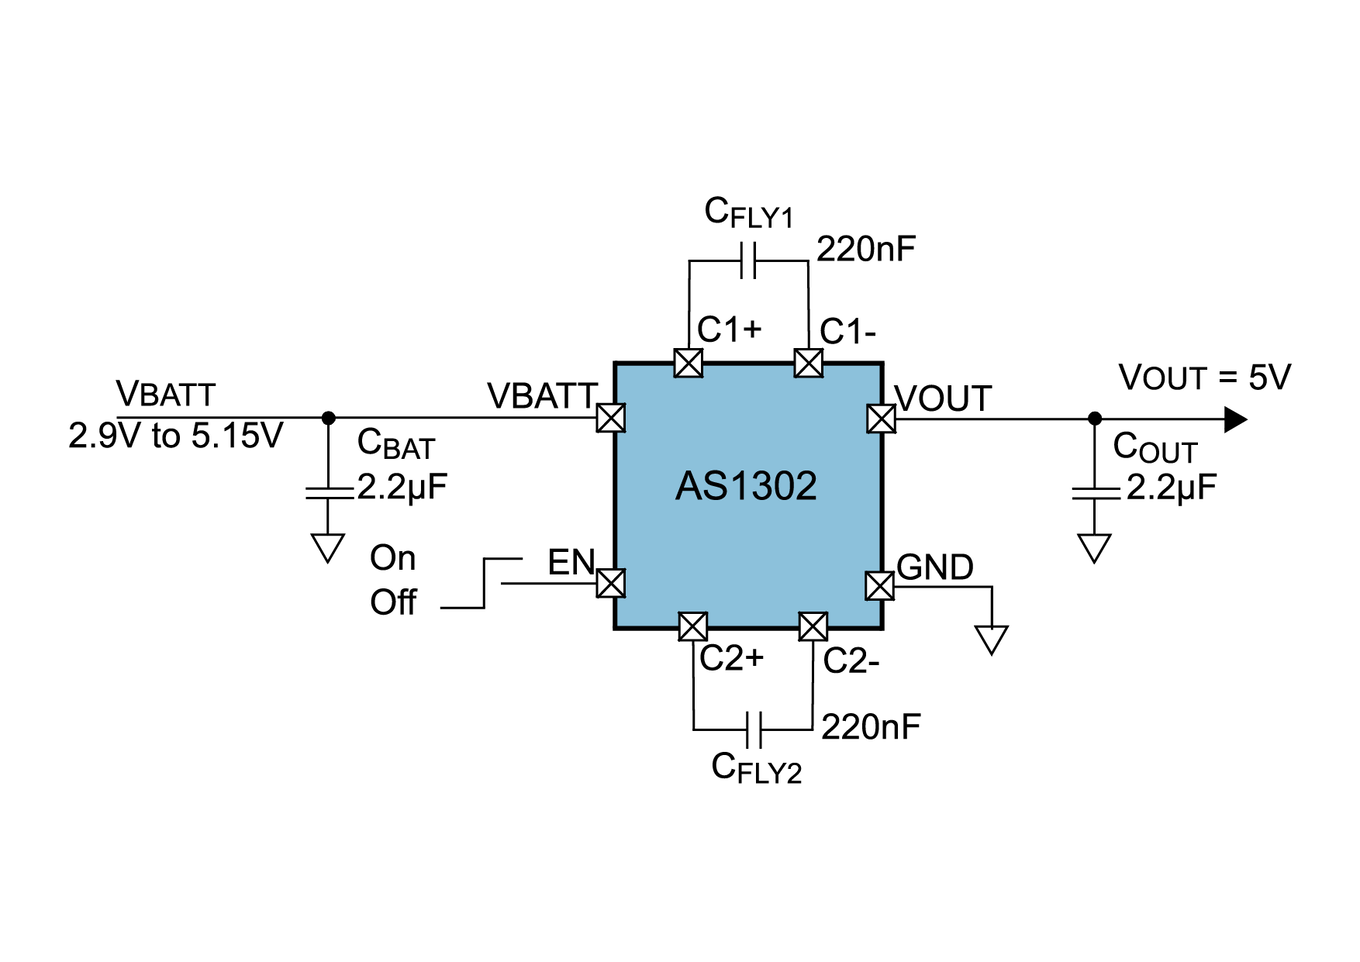 AS1302 Block Diagram